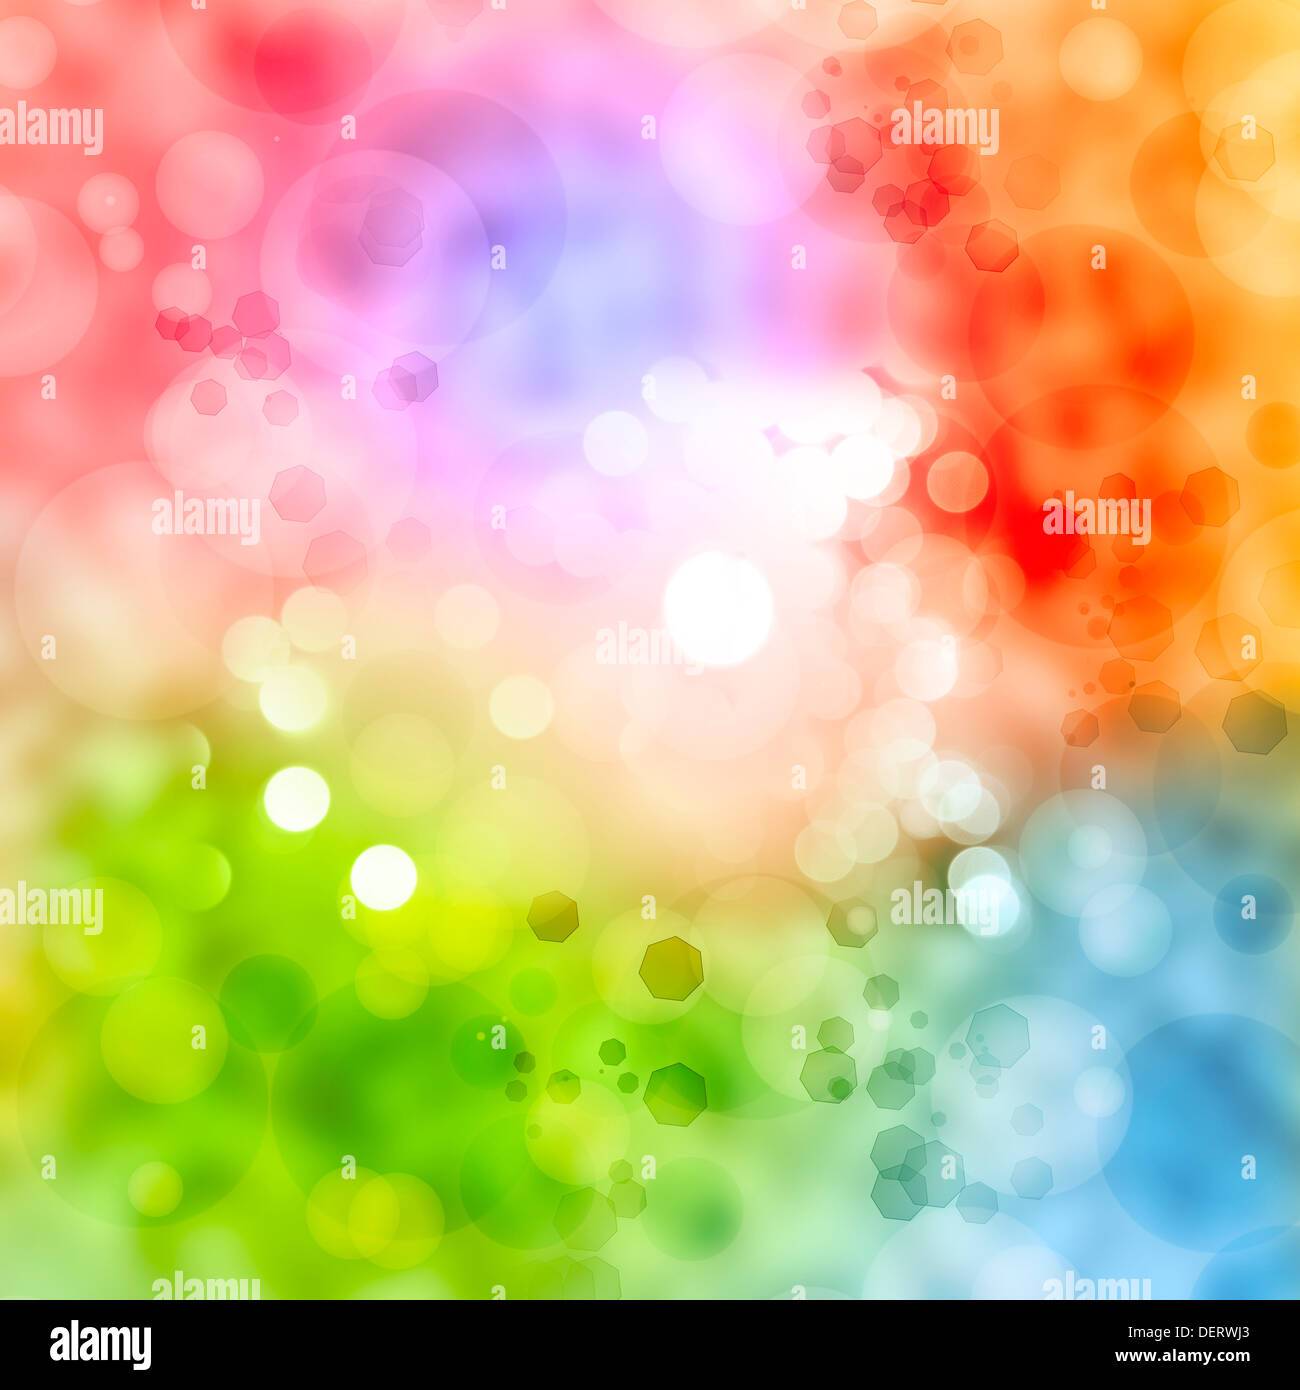 Light Color Abstract Paintings